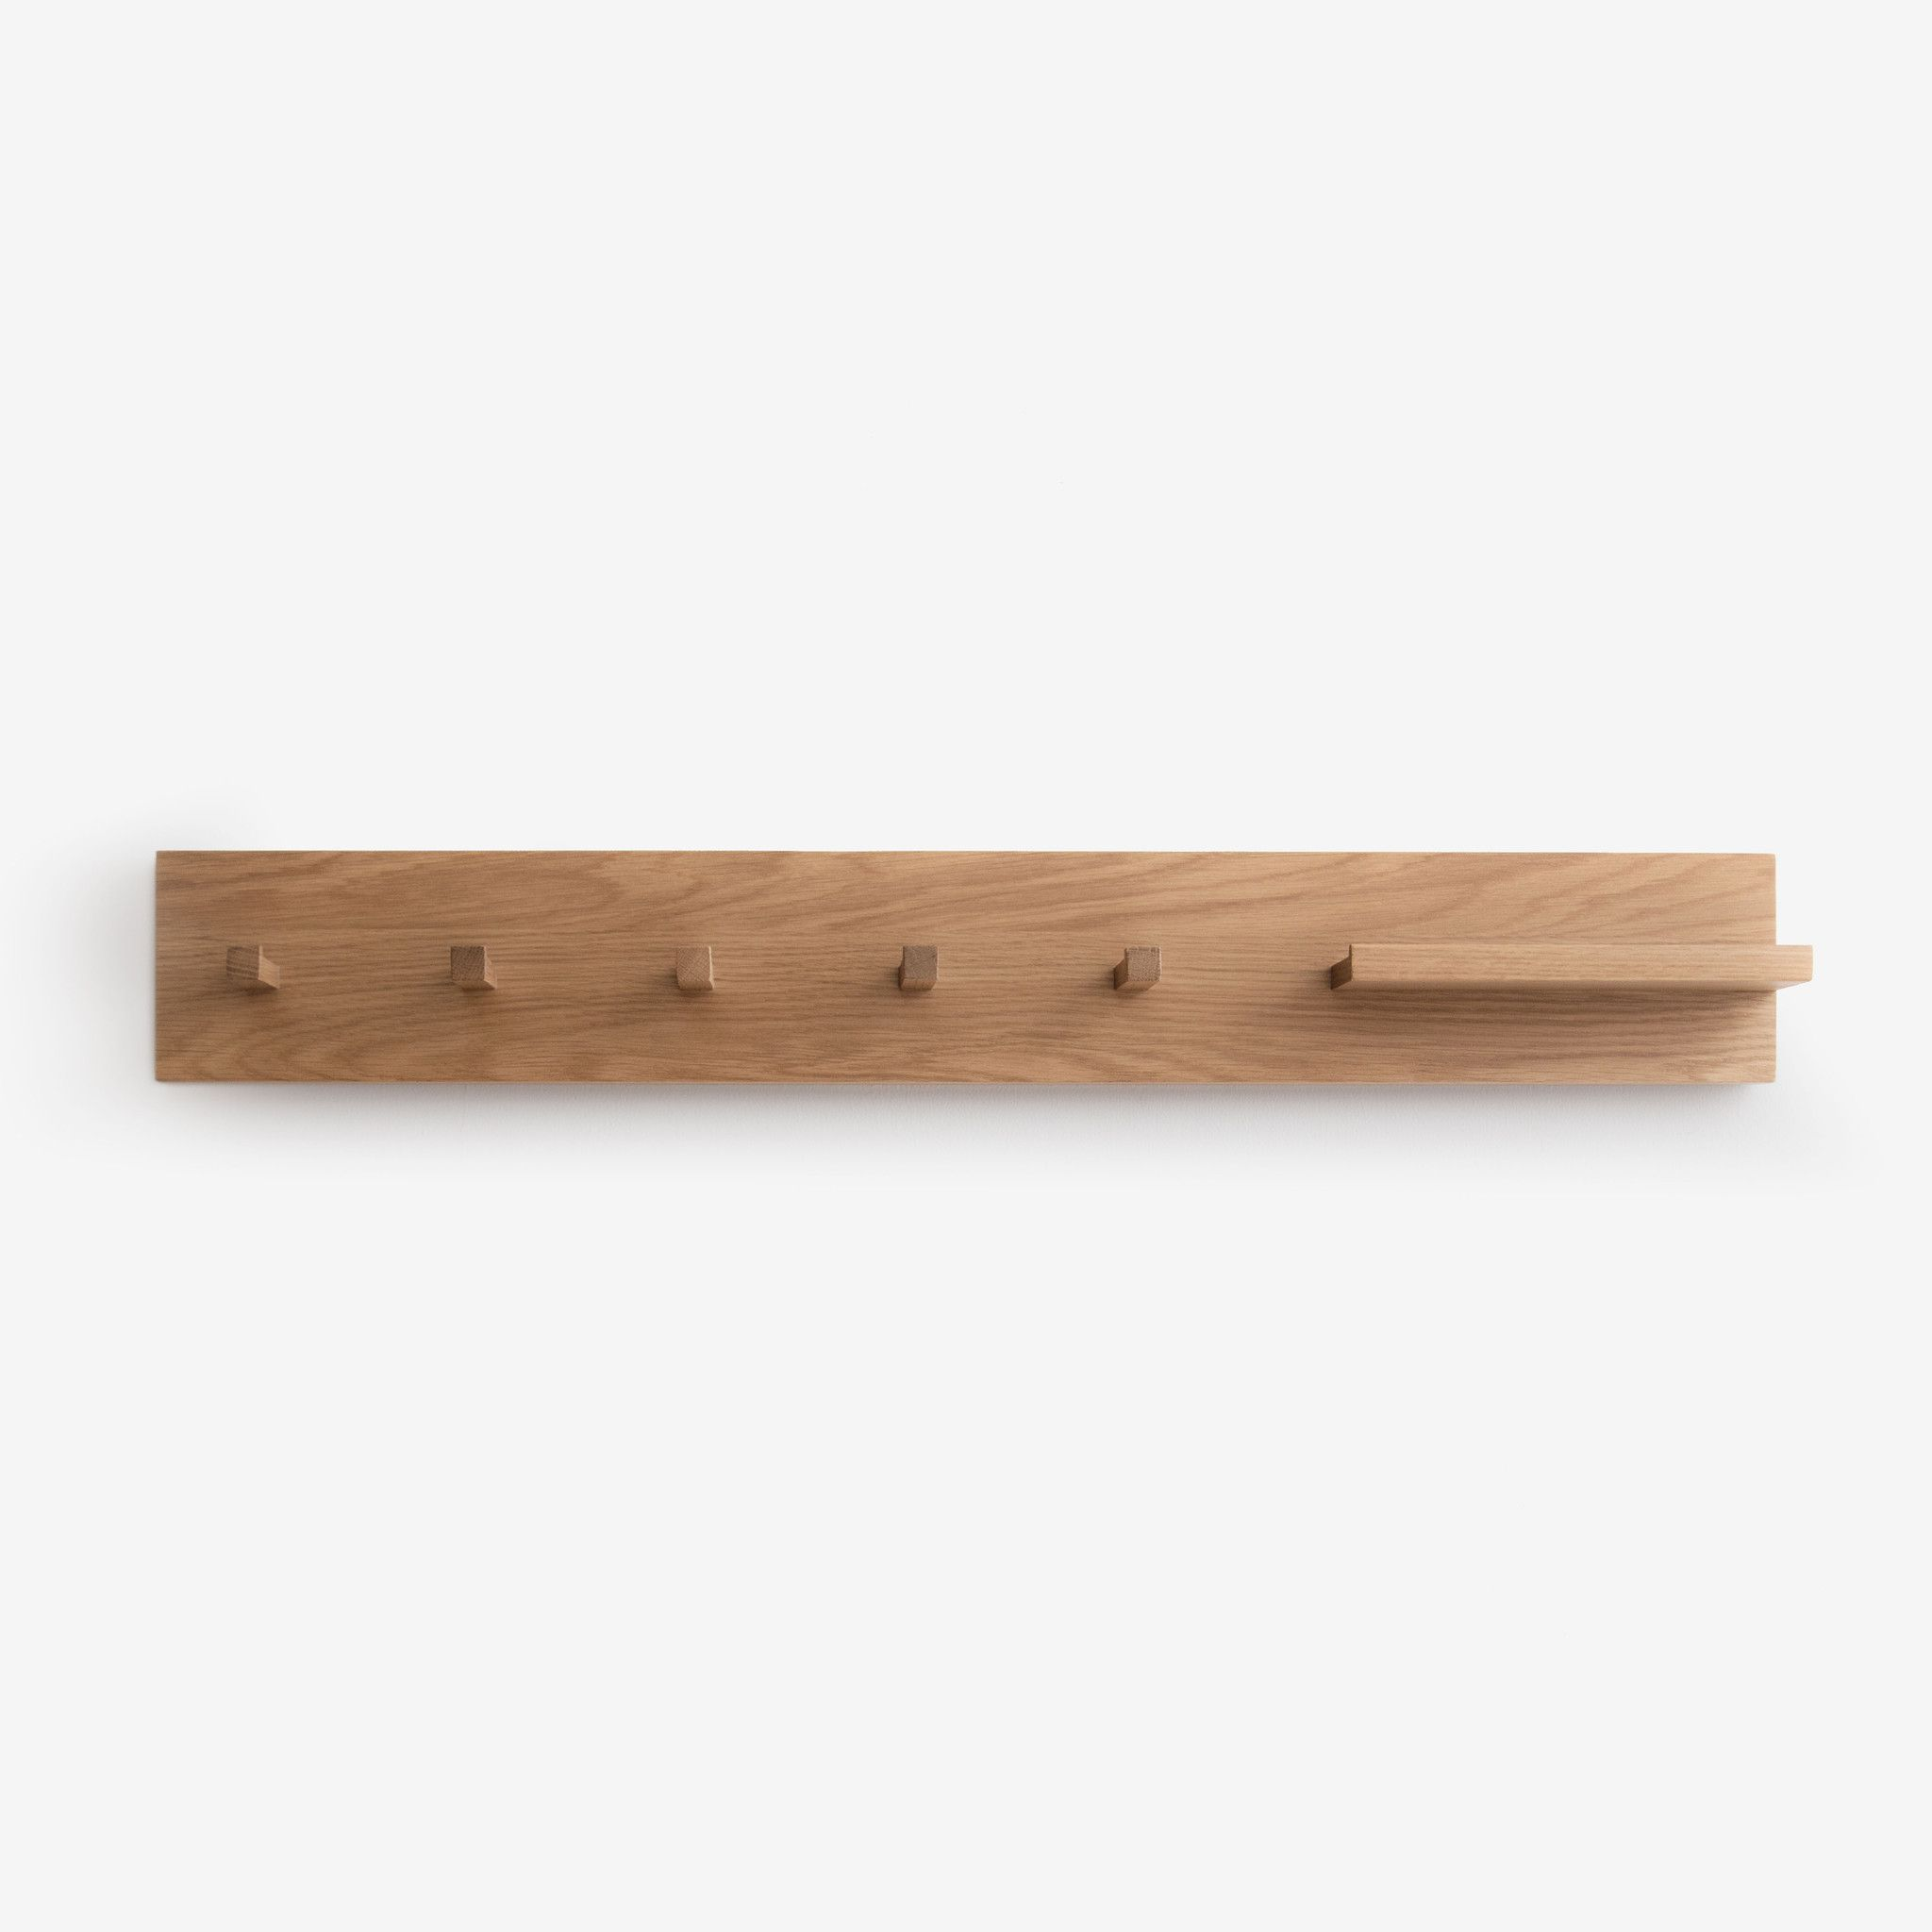 The Morse Coat Rack Keeps In Sync With The Rhythm